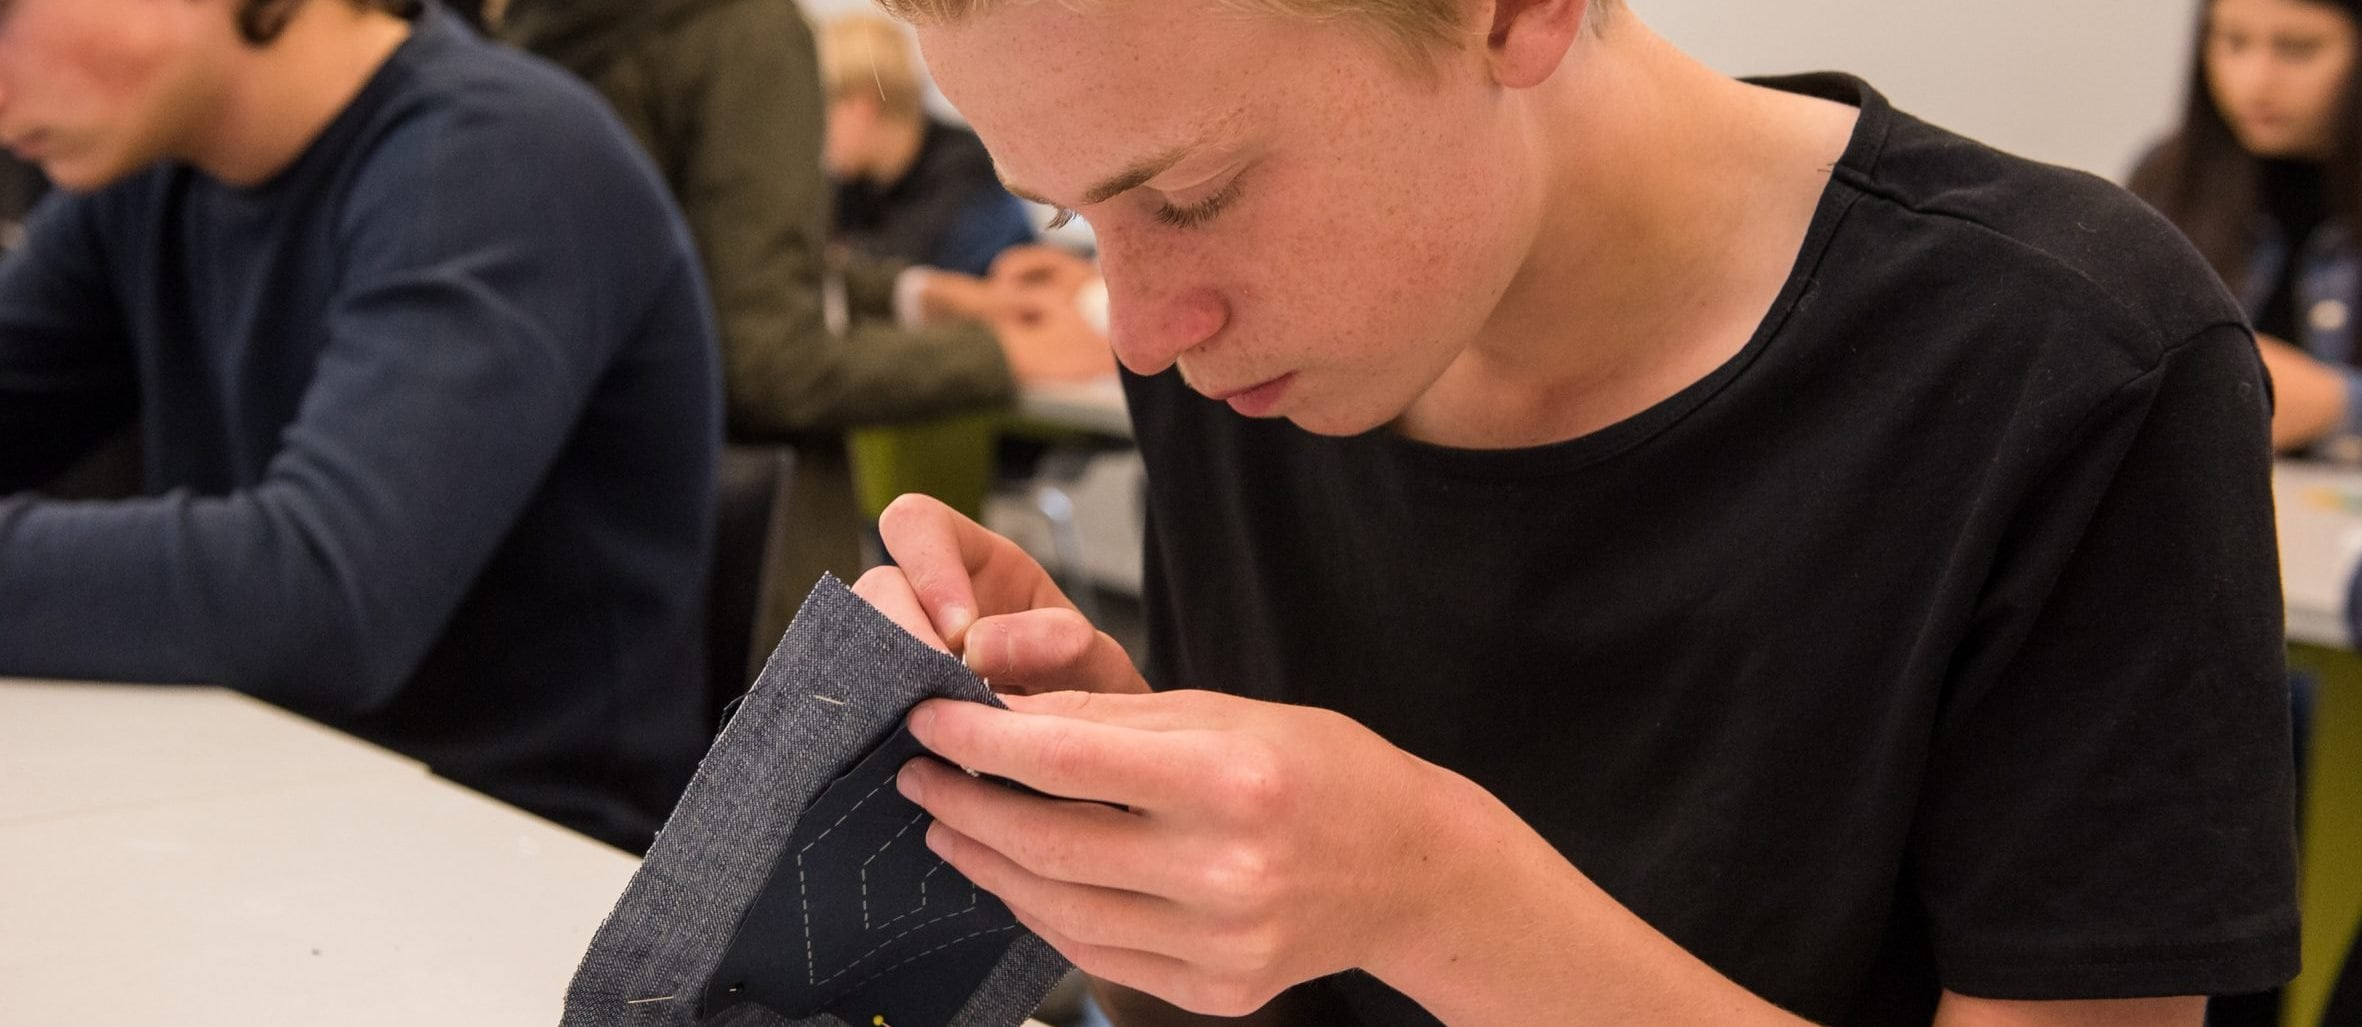 Workshop Sashiko. Foto: William van der Voort